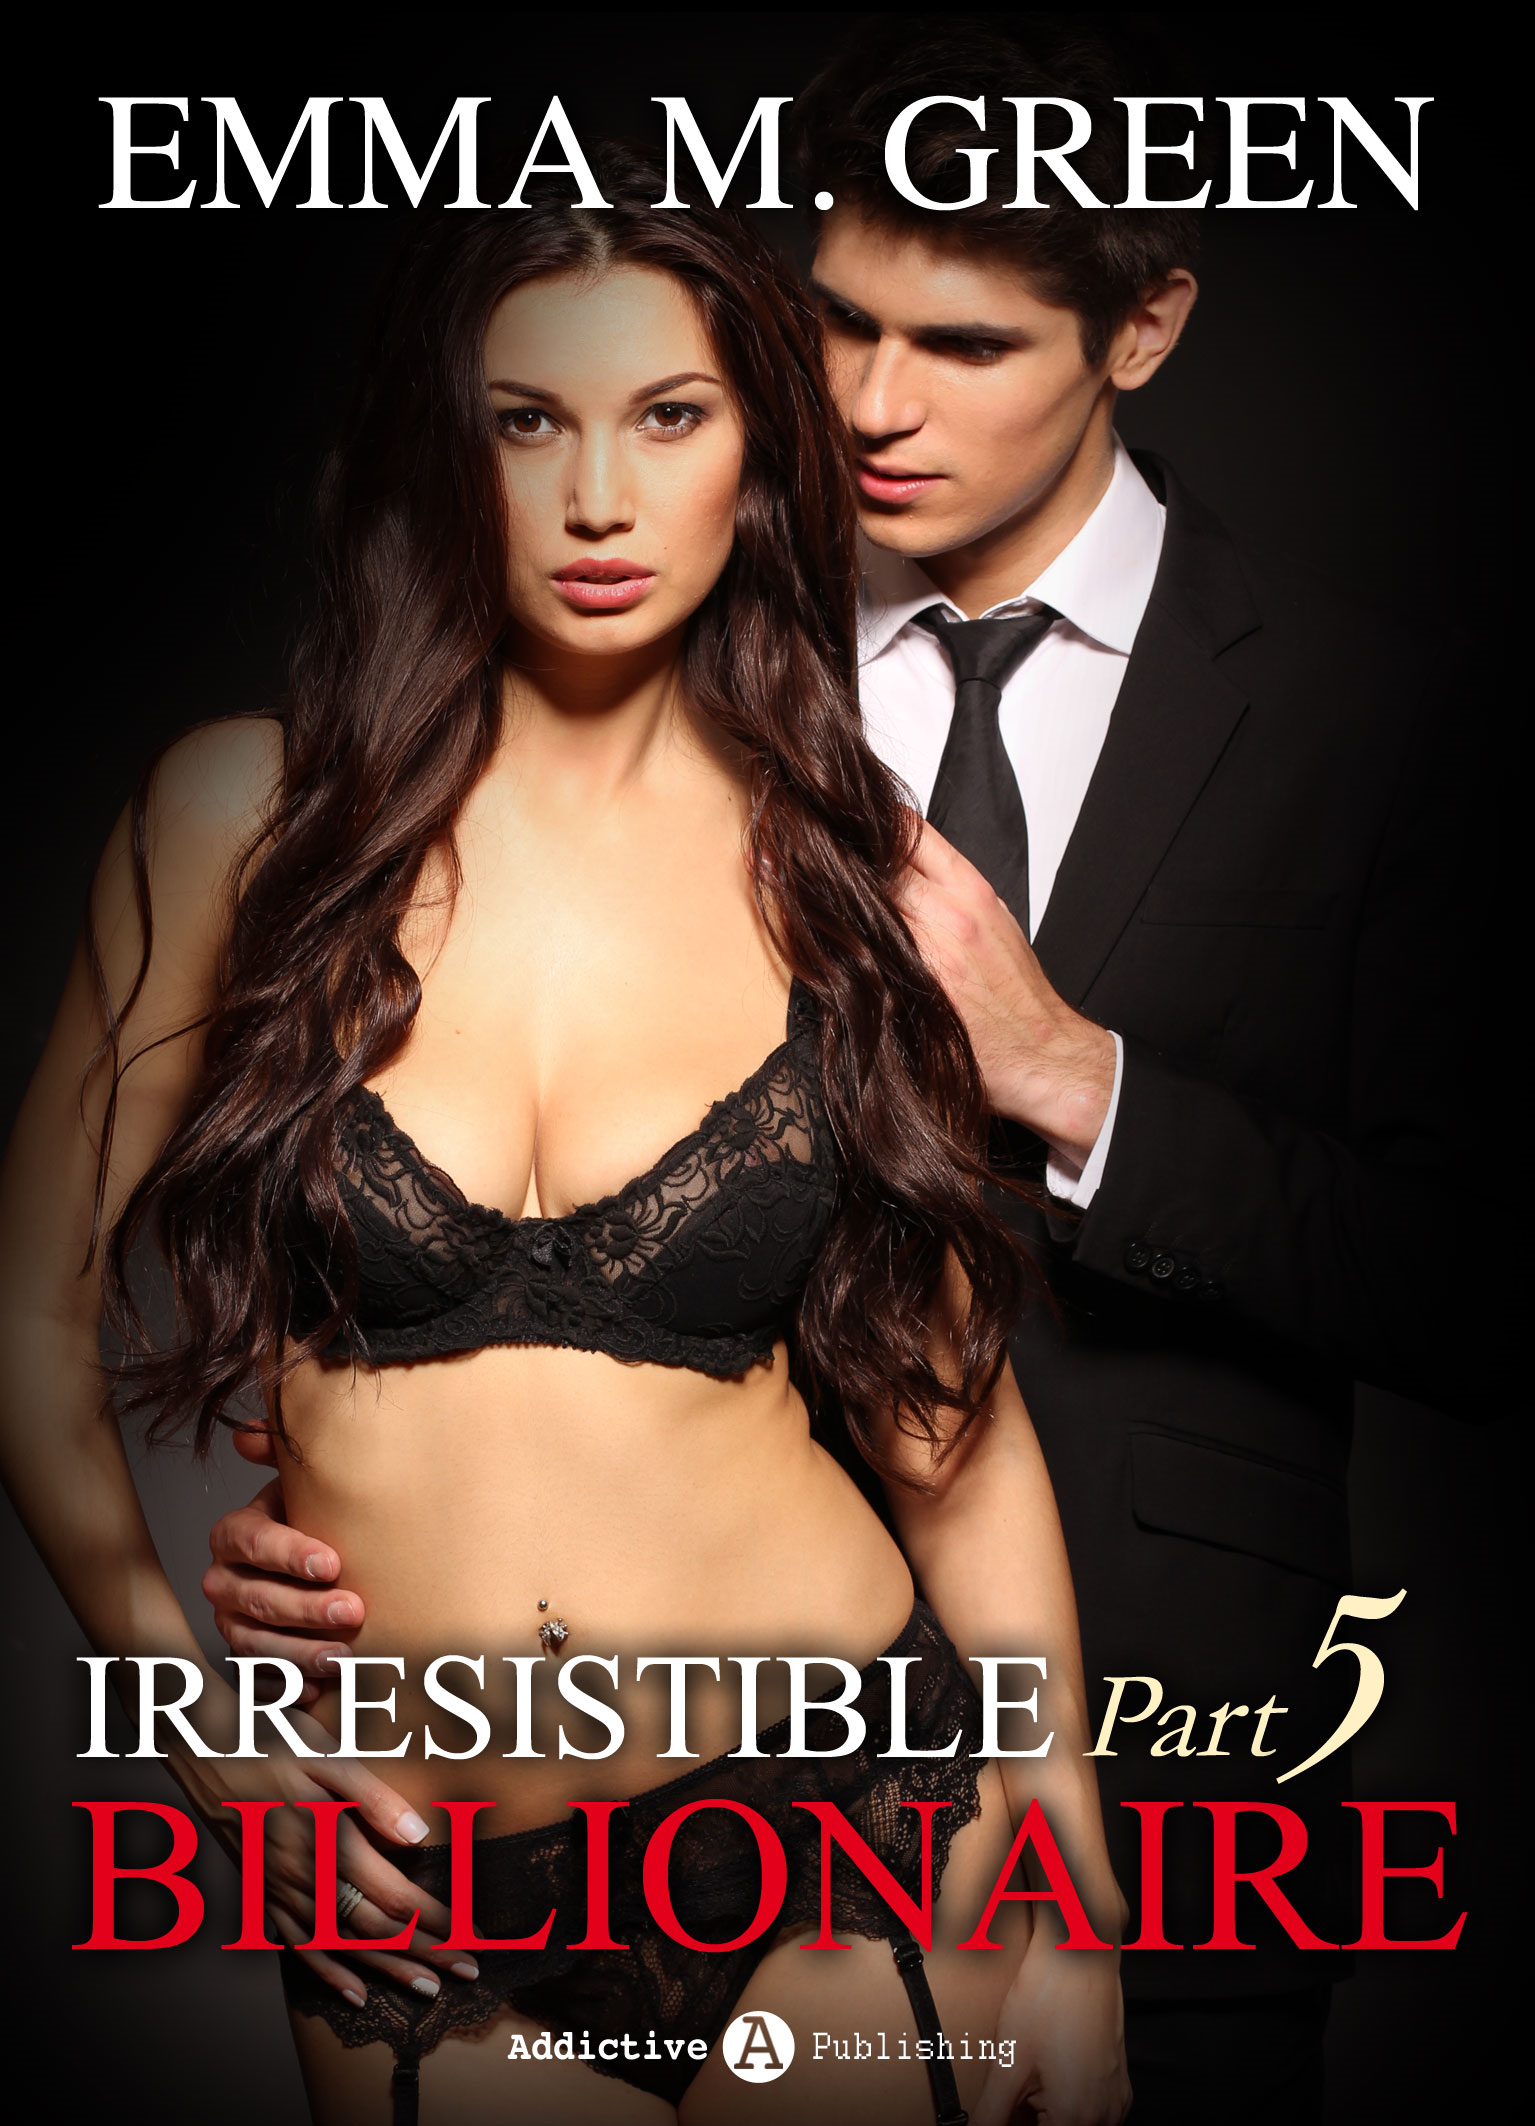 Emma M. Green - Irresistible Billionaire - Part 5